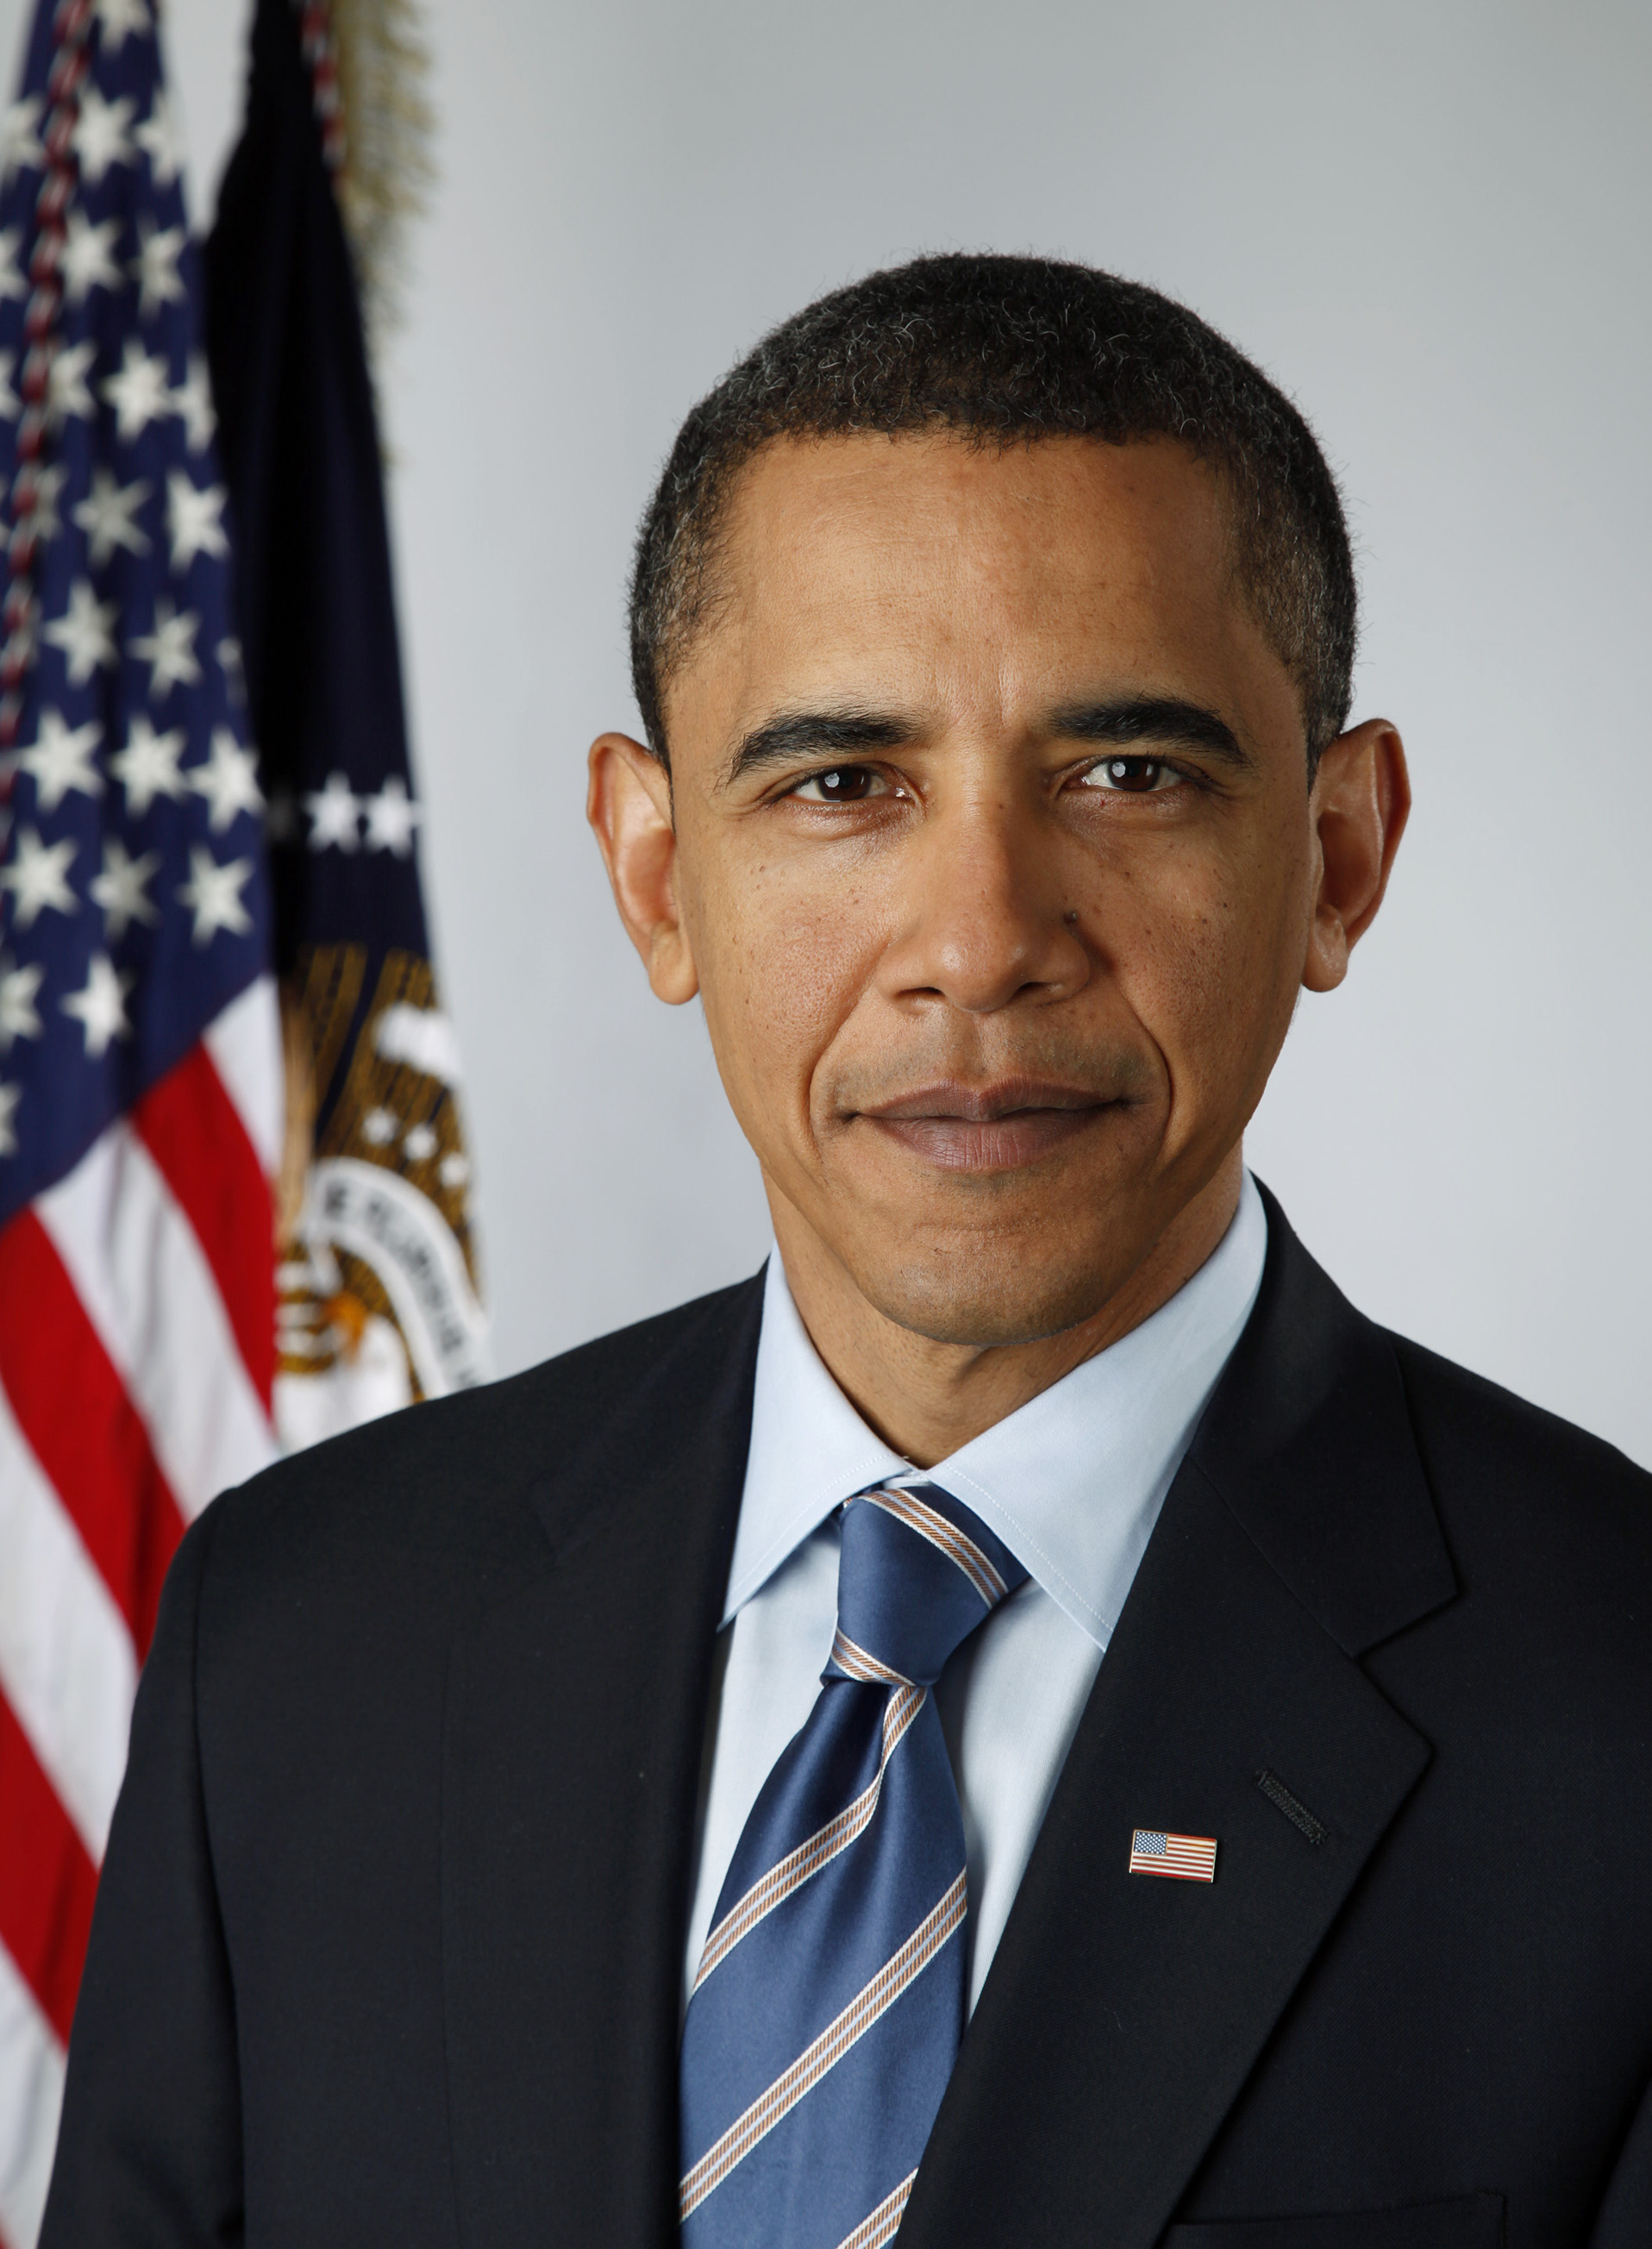 Official portrait of President-elect Barack Obama on Jan. 13, 2009. (Photo by Pete Souza)